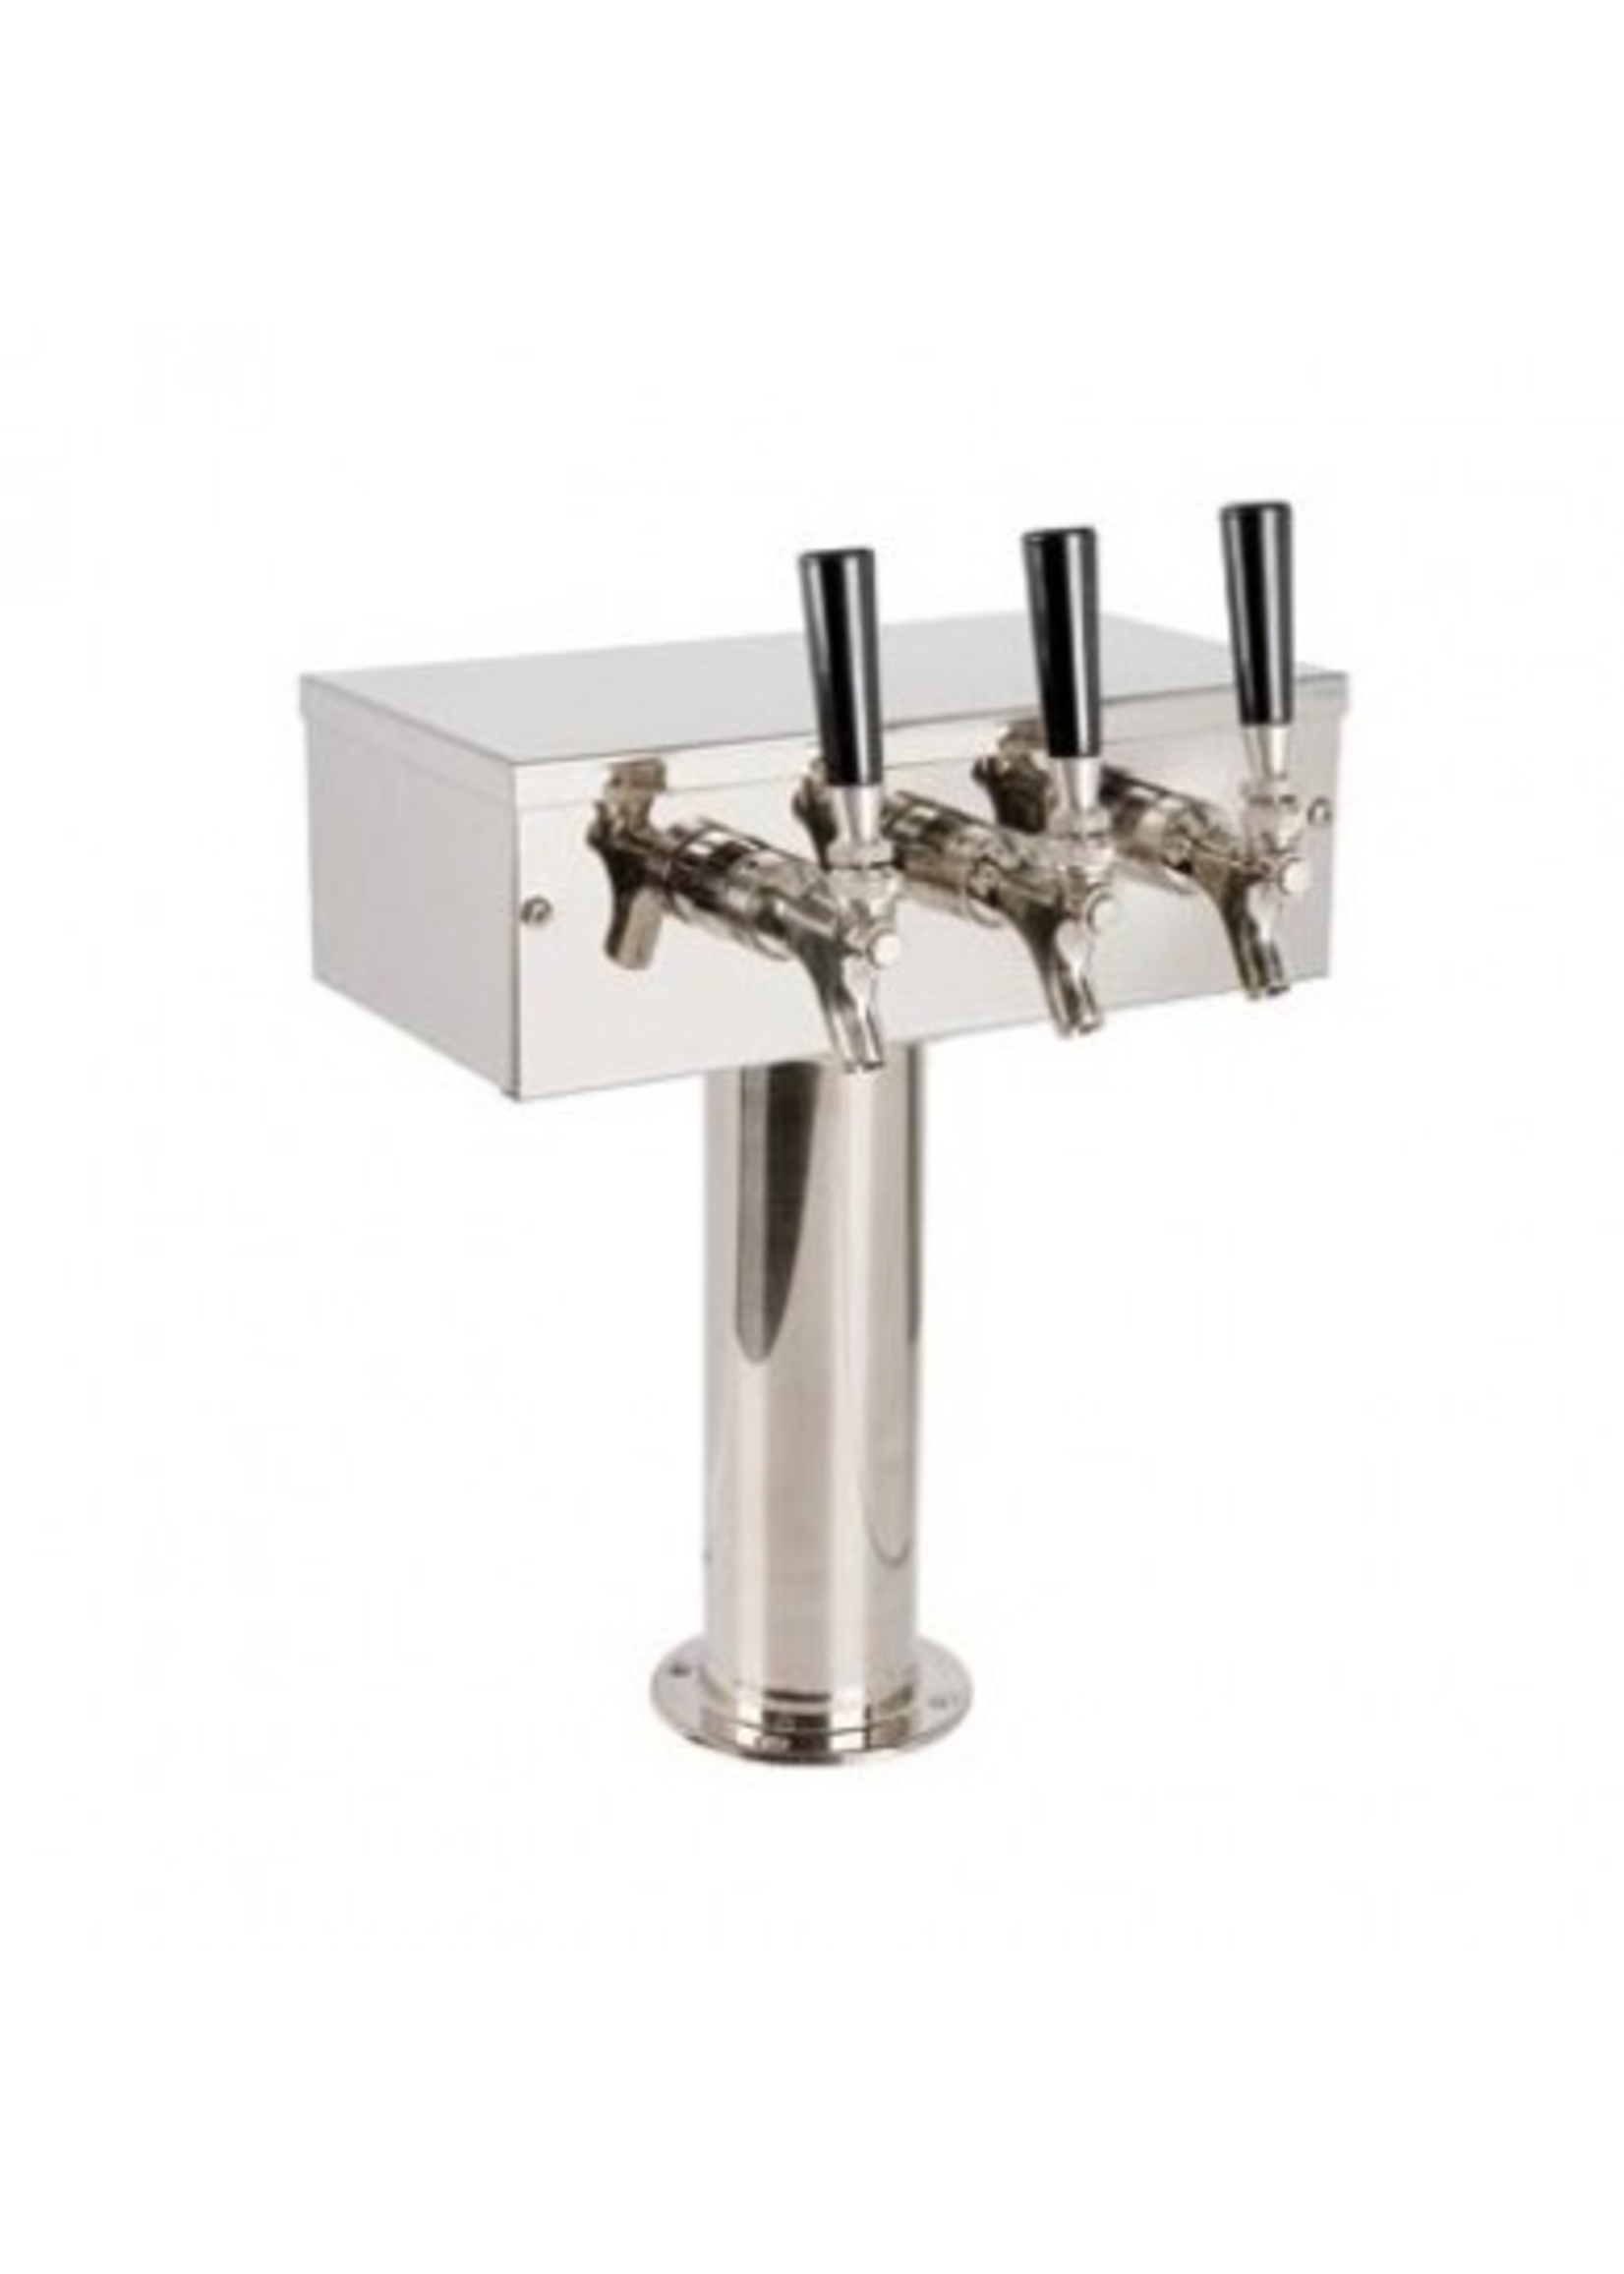 """Foxx """"T"""" Tower - Air Cooled - Stainless, 3"""" OD Round x 12"""" Wide - 3 Faucet (Stainless)"""